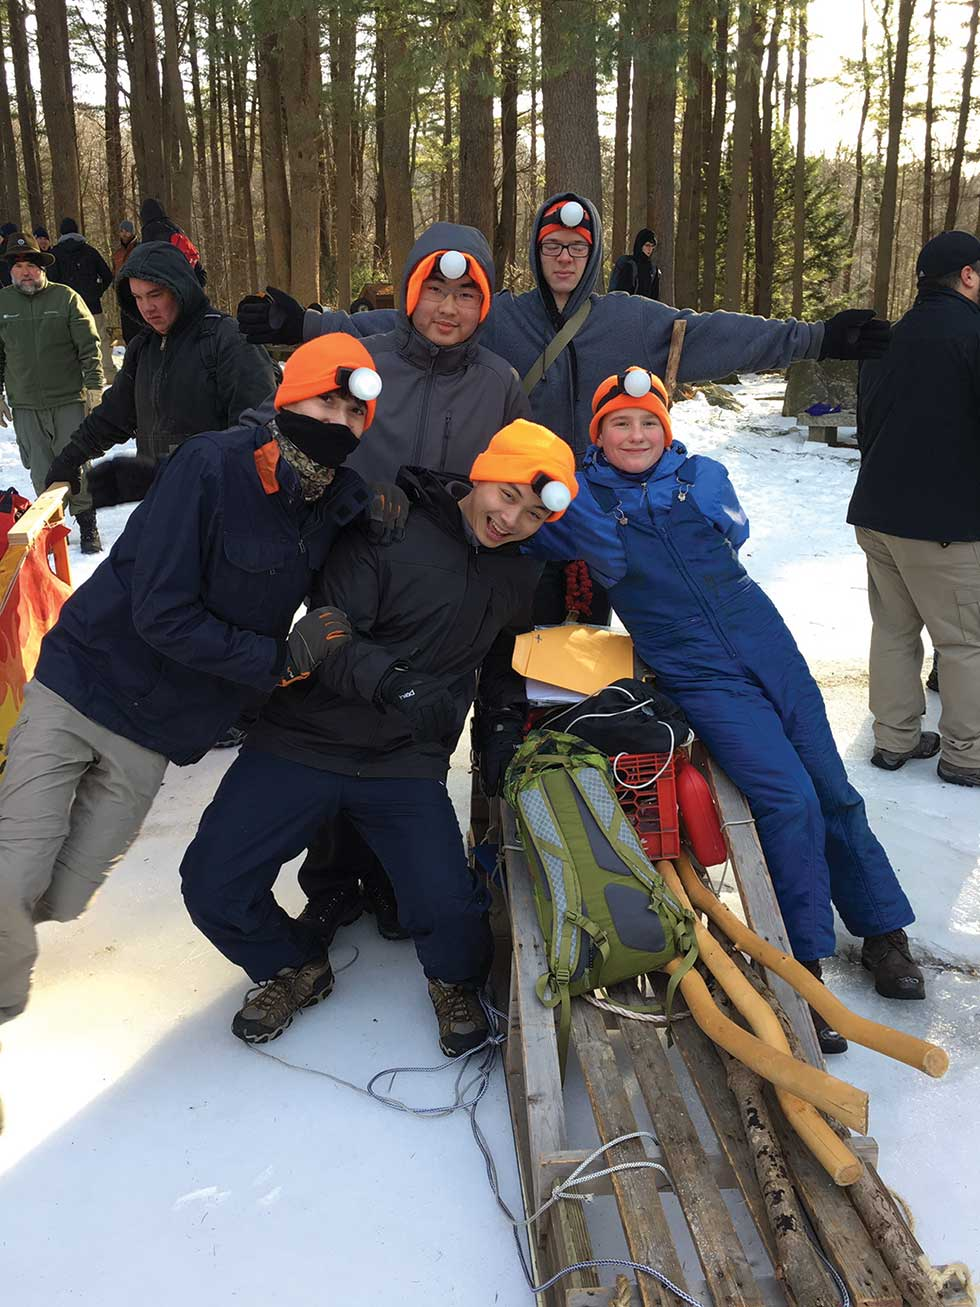 Woodbridge Boy Scout Troop 907 Prevails At Annual Klondike Derby